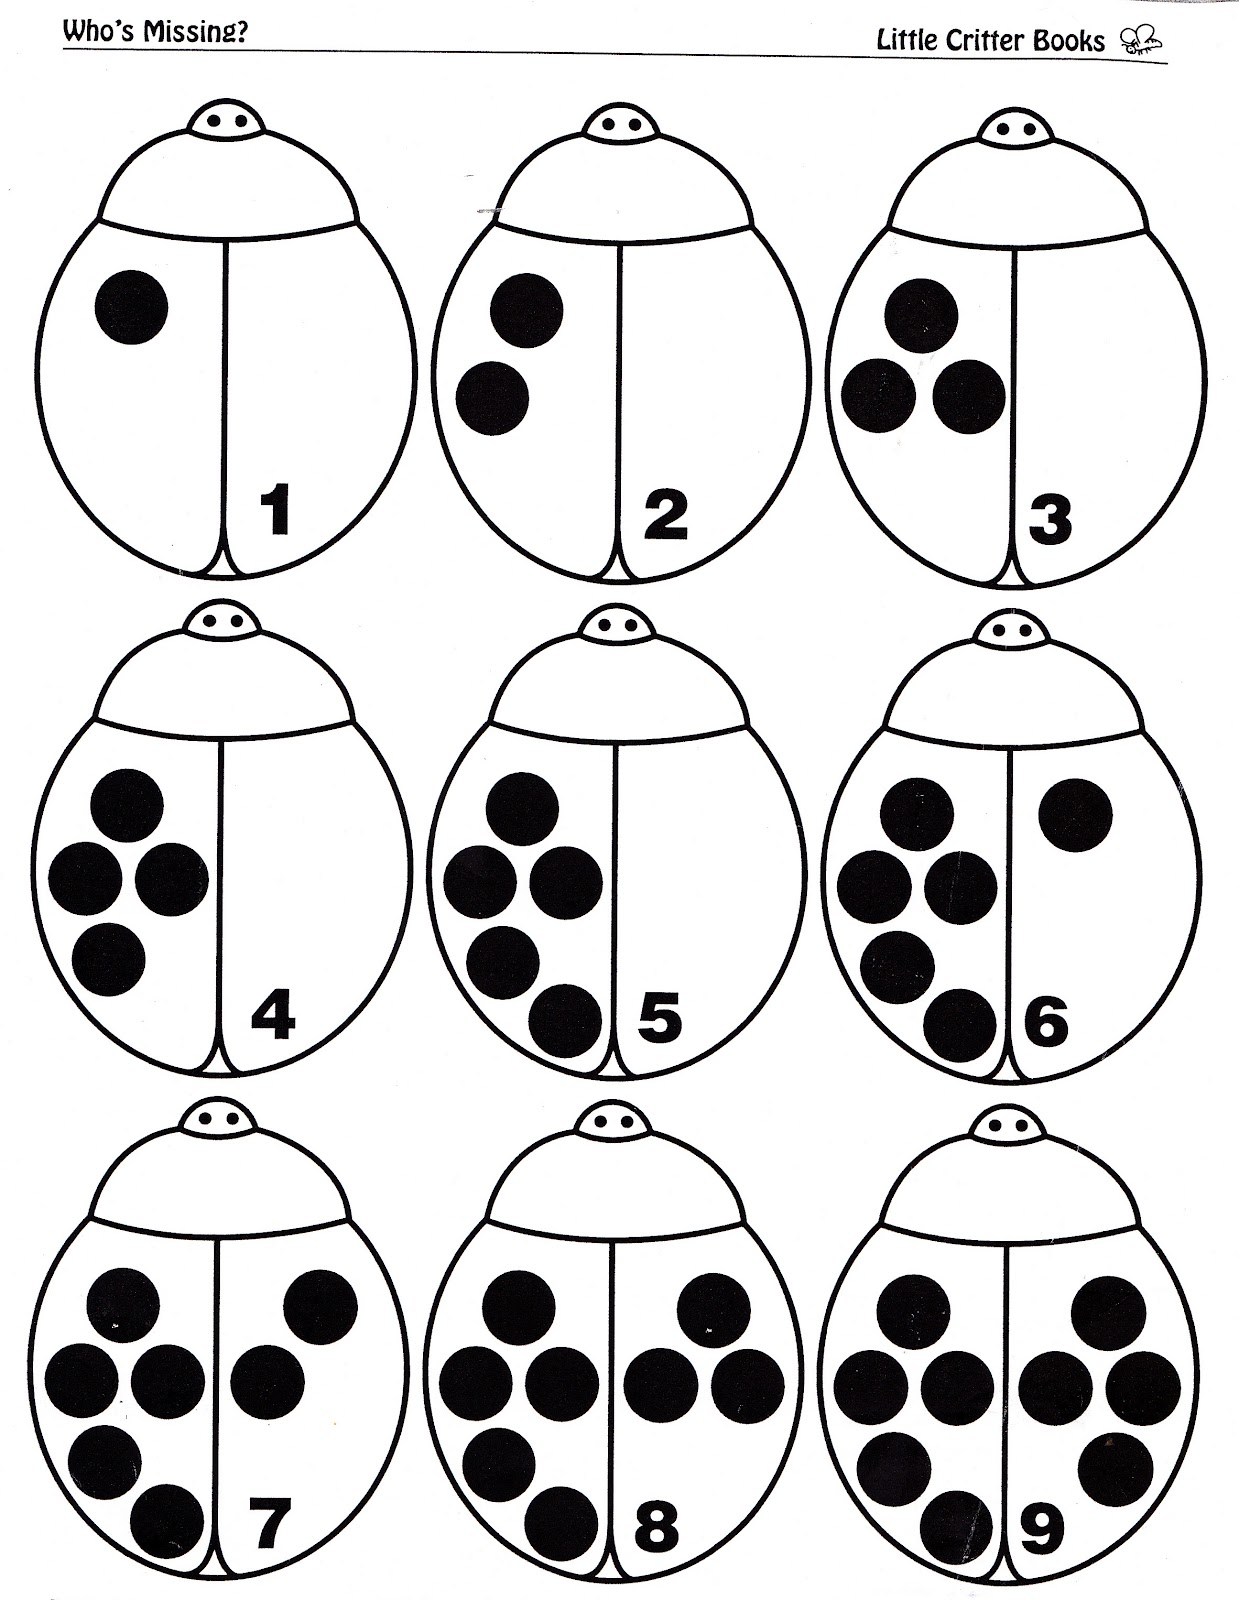 Ladybug Coloring Preschool Math Sketch Coloring Page